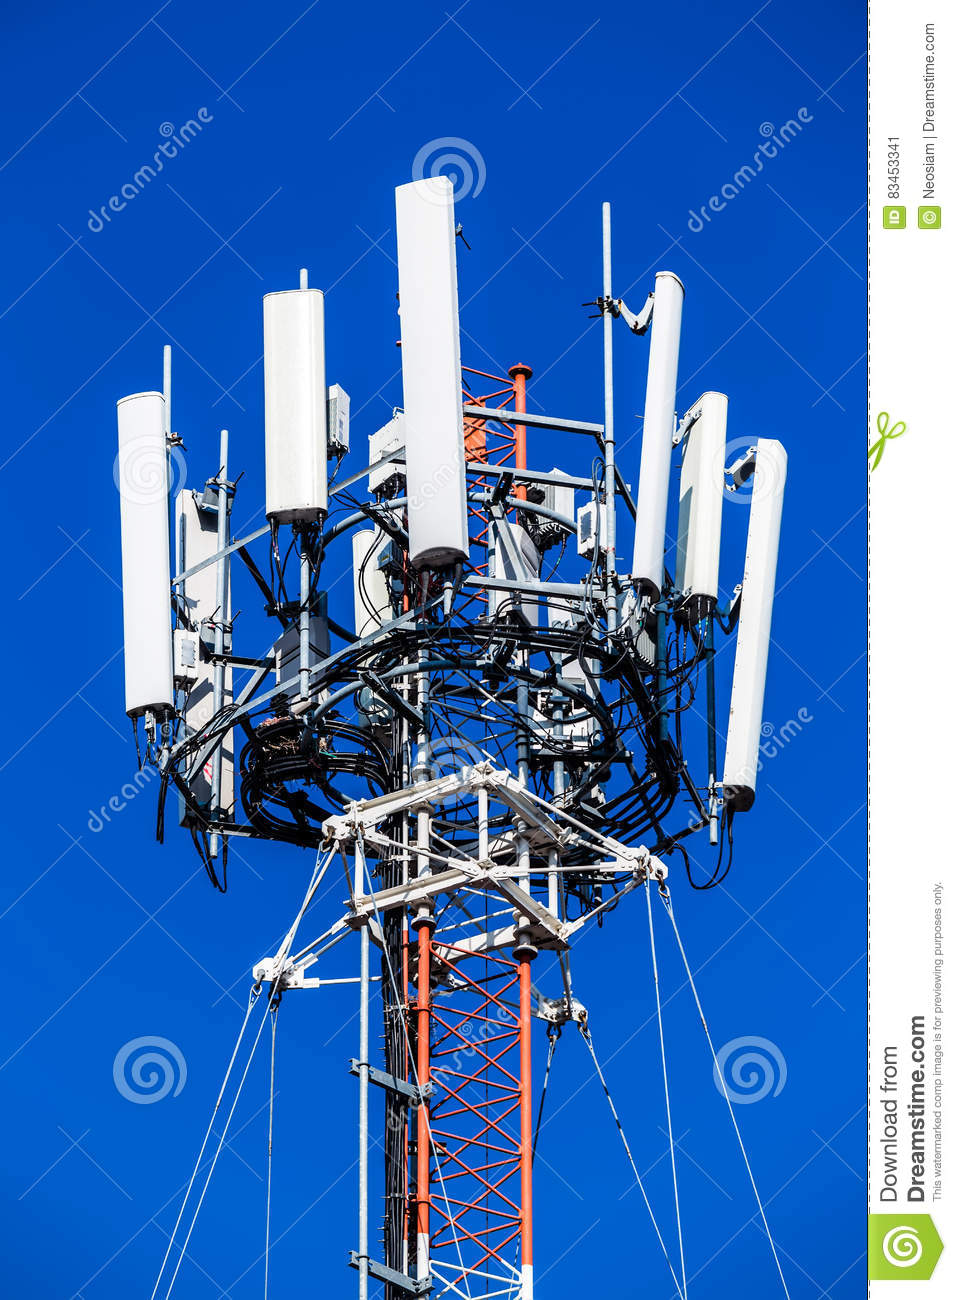 Mobile Phone Communication Repeater Antenna  Stock Image - Image of